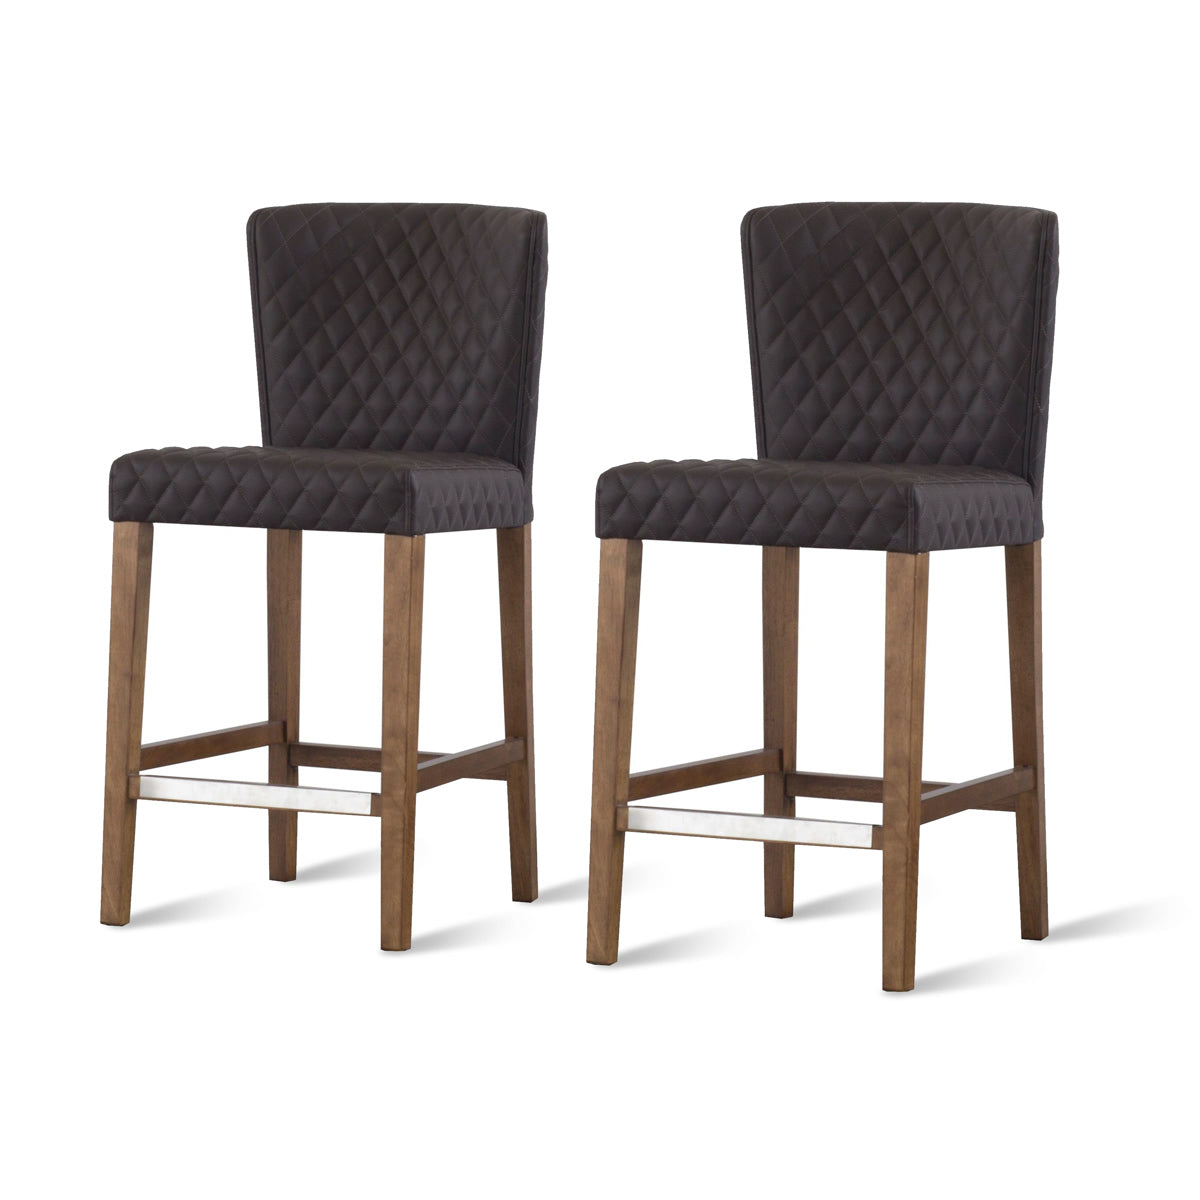 Albie Diamond Stitching PU Leather Counter Stool - Set of 2 by New Pacific Direct - 3900054-401